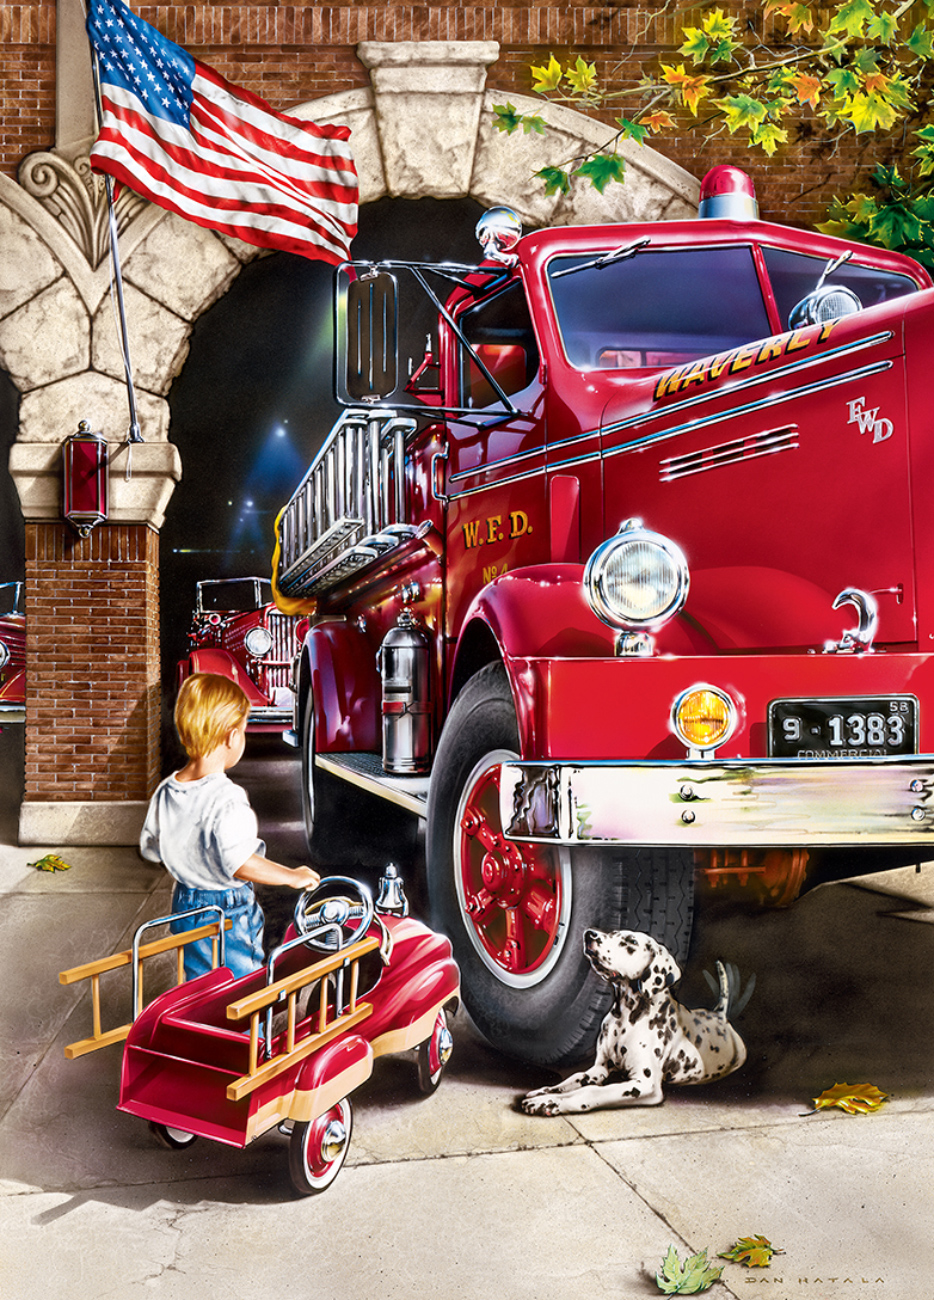 Firehouse Dreams Americana & Folk Art Jigsaw Puzzle